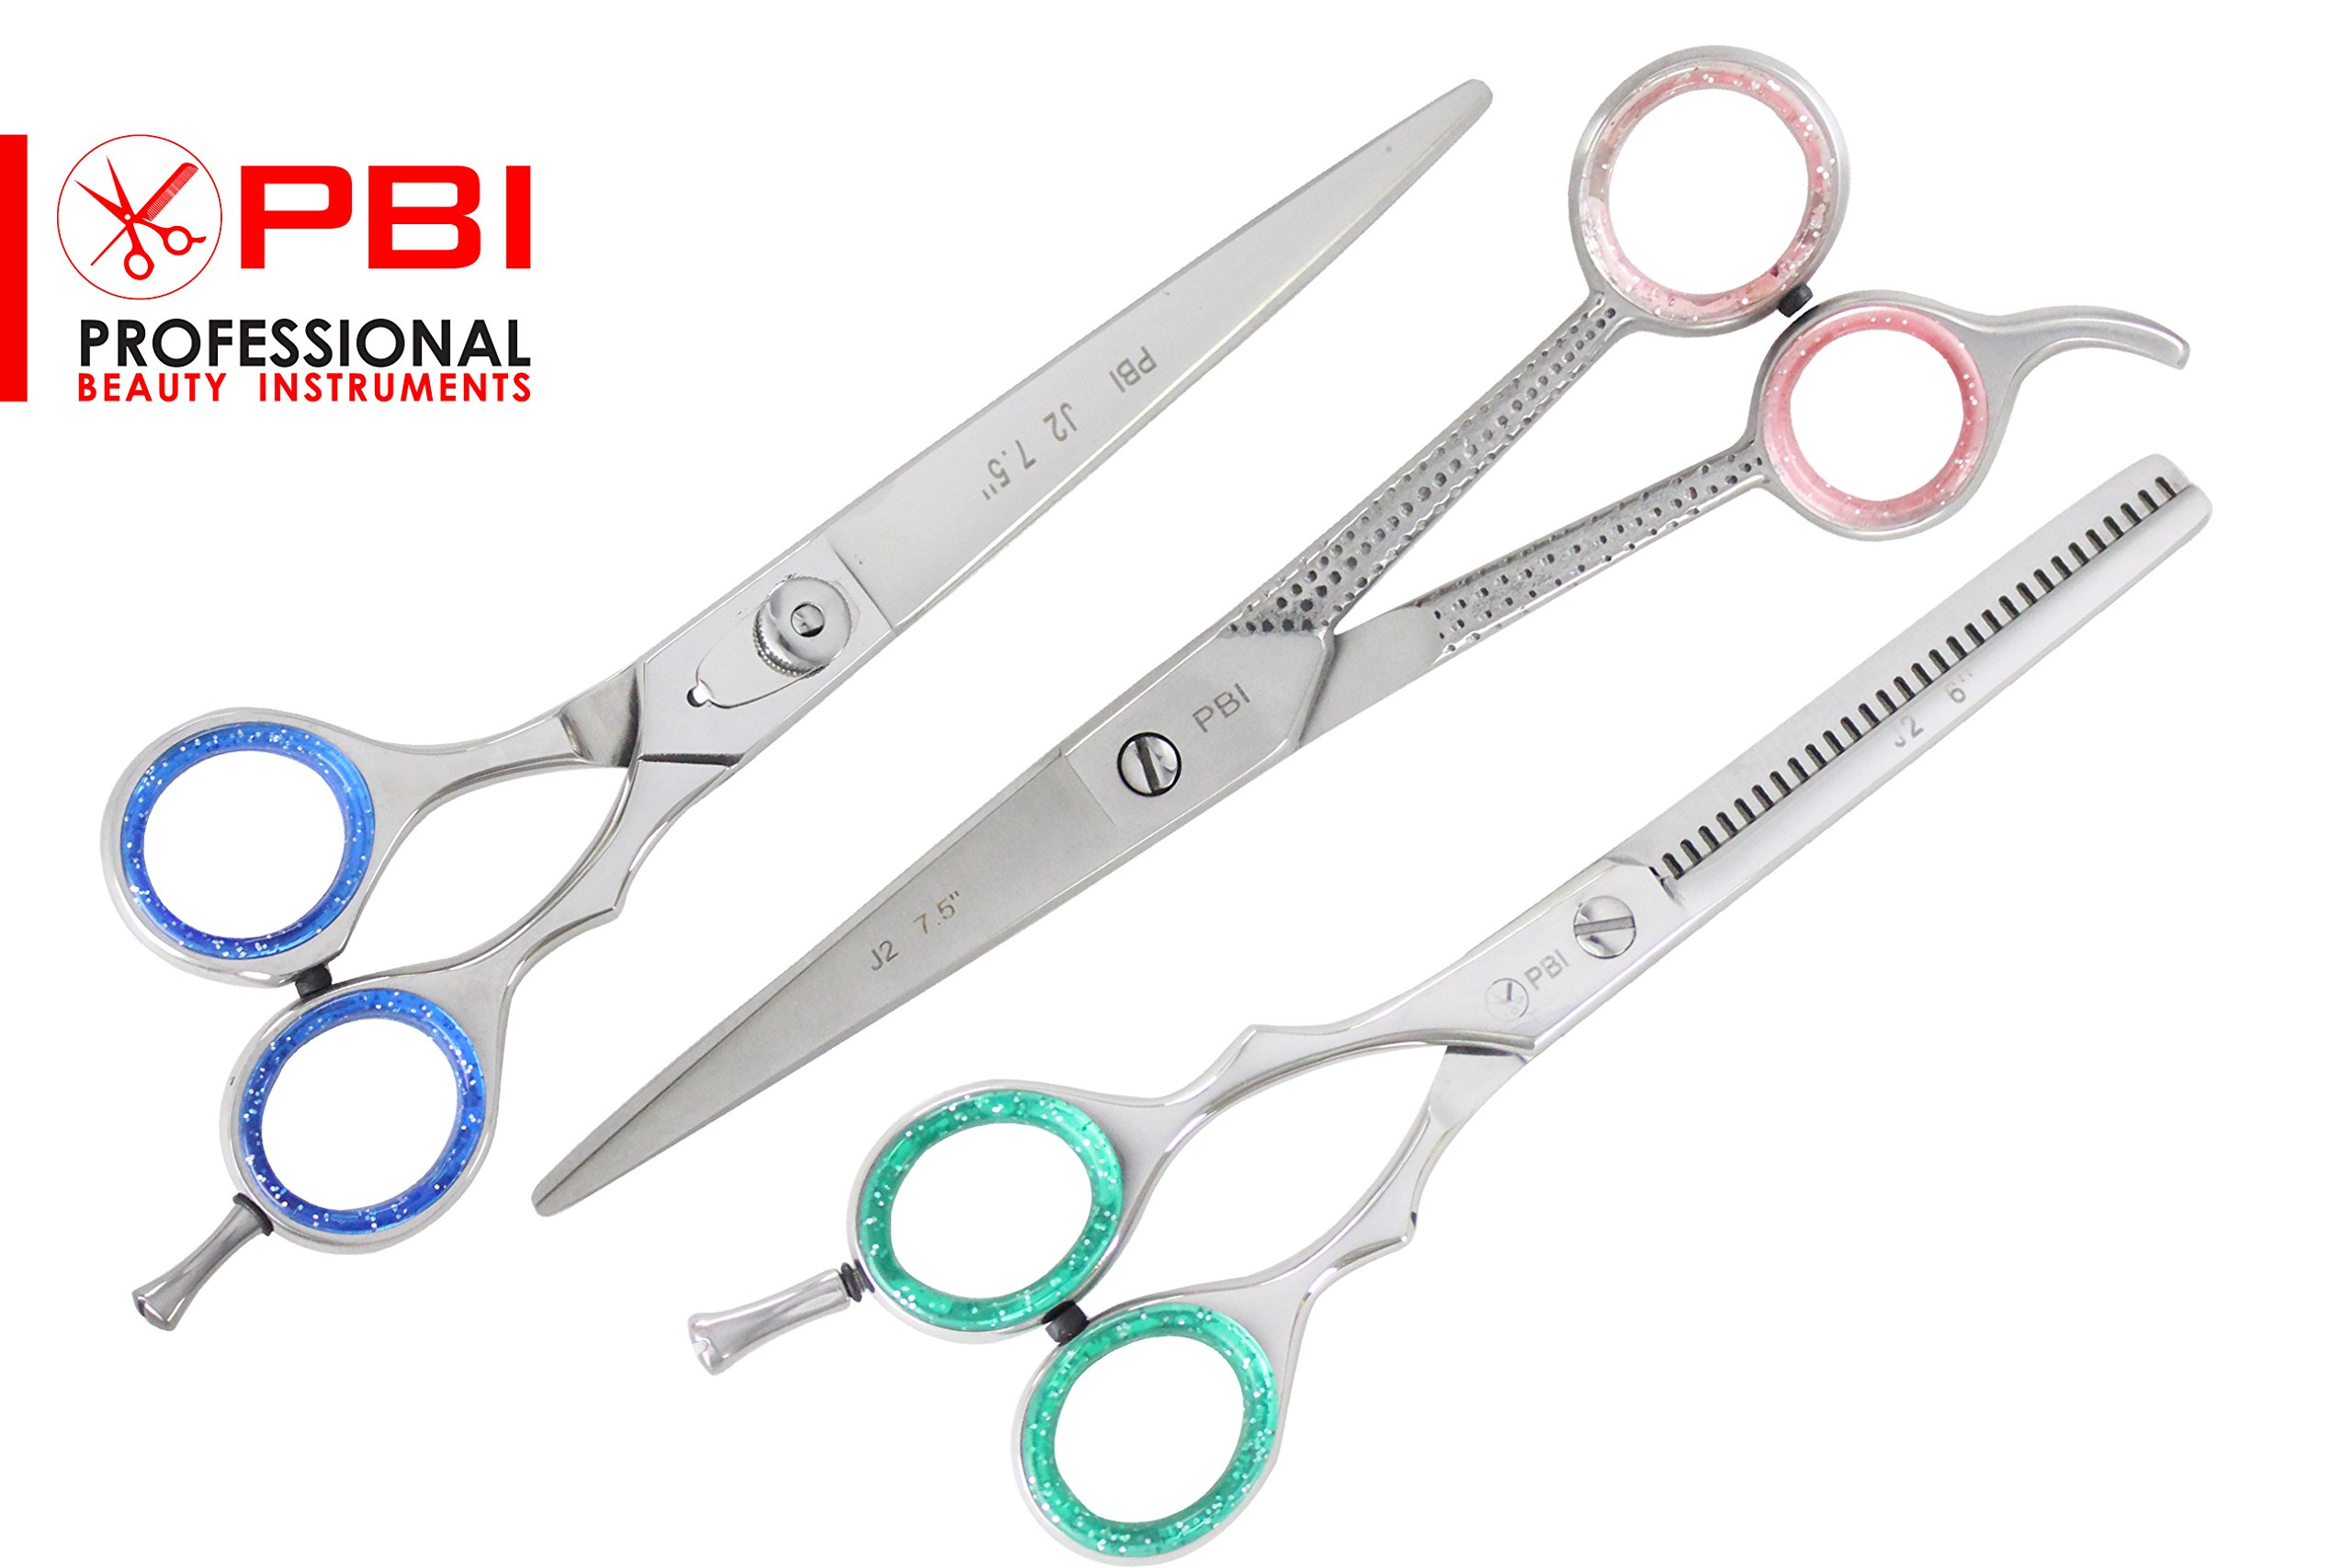 Professional Hair Cutting Shear Dogs Cats Animals , Pet Grooming Shears 7.5 inch With Thinning Scissors 6 inch , Two Scissors One Thinning Stainless Steel from PBI